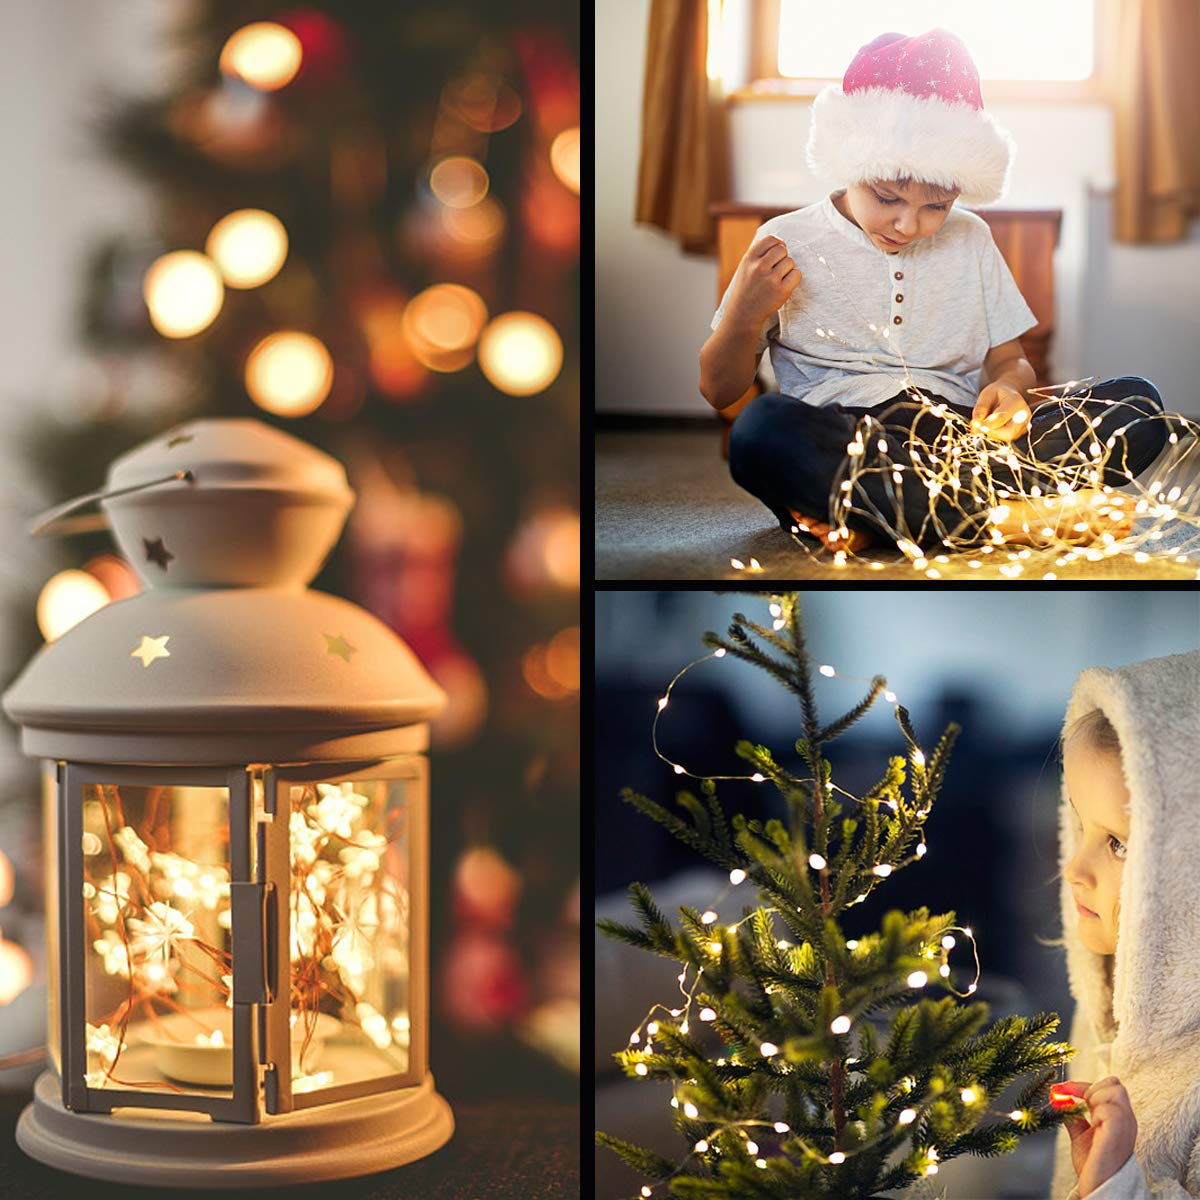 YMTC Fairy Lights,100 LEDs Battery Operated String Lights,Remote Control Silver Wire /& 8 Modes,Icicle Twinkle Lights for Window Bottle Wedding Holiday Party Kids Warm,8Ft,Pack of 2